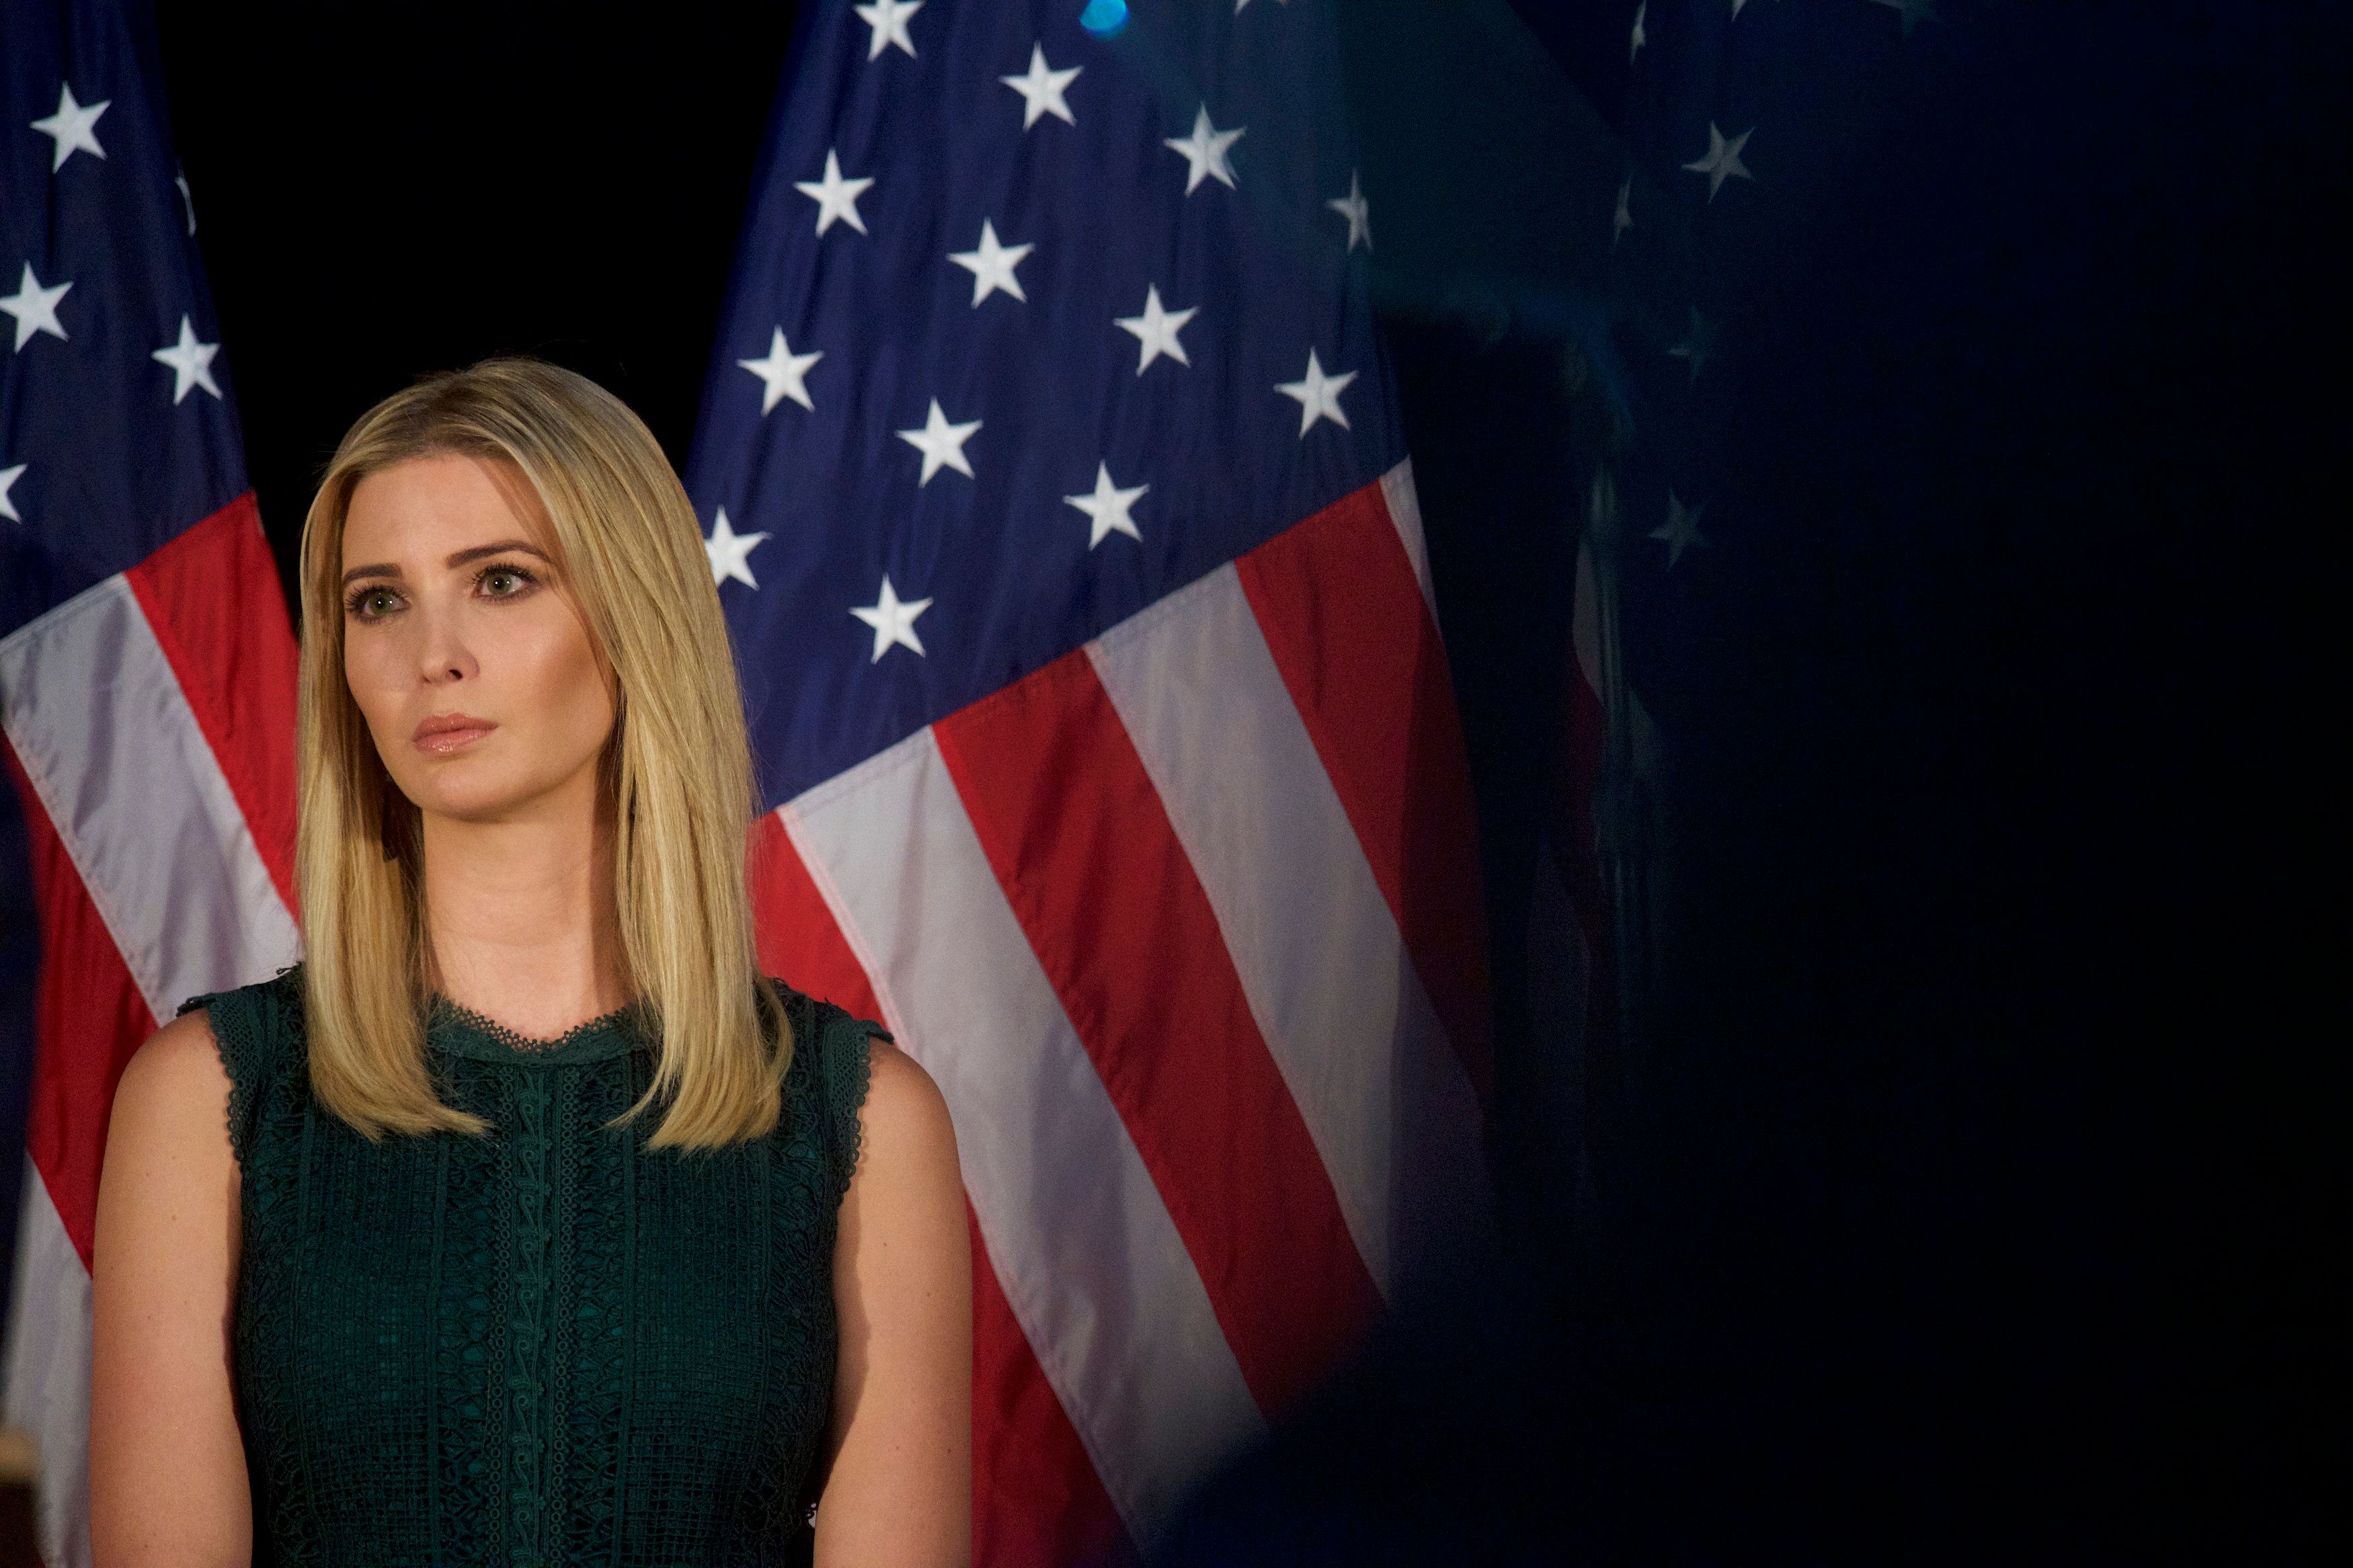 ASTON, PA - SEPTEMBER 13:  Ivanka Trump looks on as her father, Republican presidential hopeful Donald J. Trump, speaks during a campaign event at the Aston Township Community Center on September 13, 2016 in Aston, Pennsylvania.  Recent national polls show the presidential race is tightening with two months until the election. (Photo by Mark Makela/Getty Images)